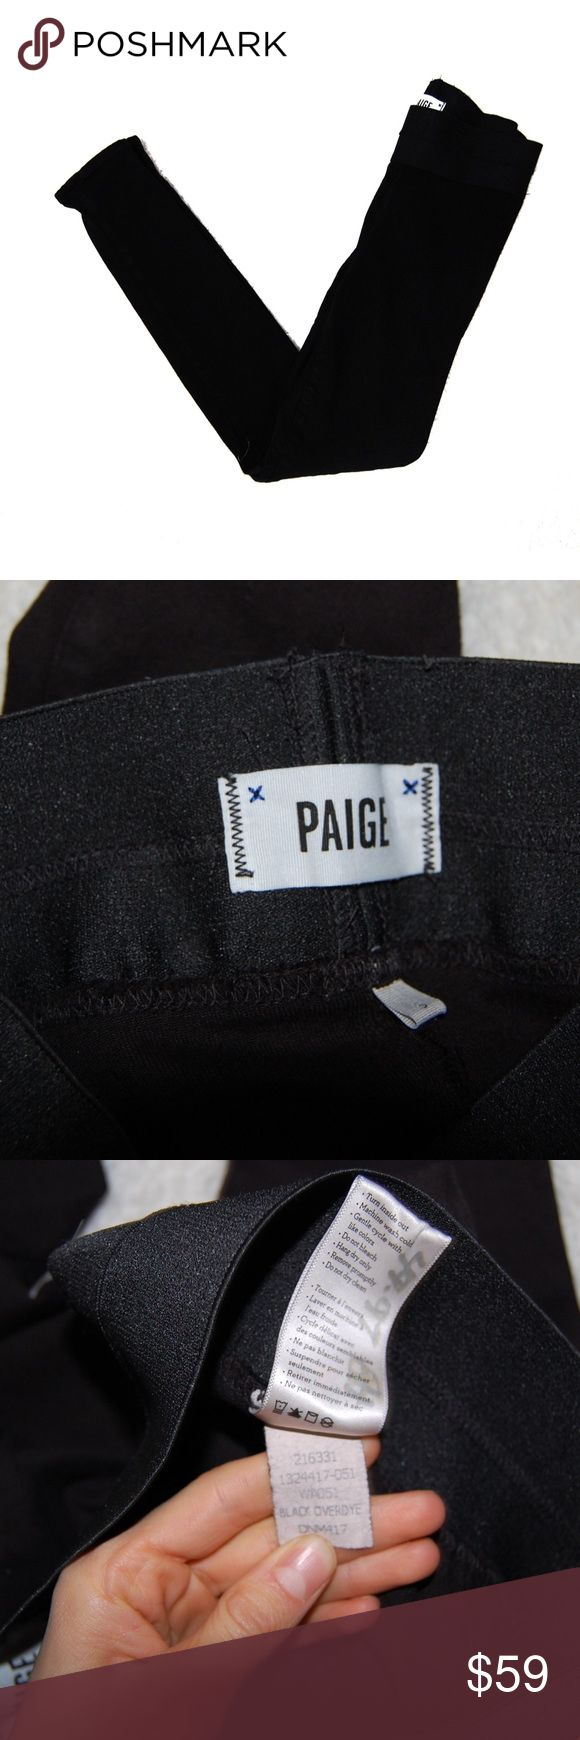 Paige Solid Black Moto Jeans Skinny Jegging S Tight fit Jegging Style Pants Size Small Quality Material In very good condition PAIGE Pants Skinny